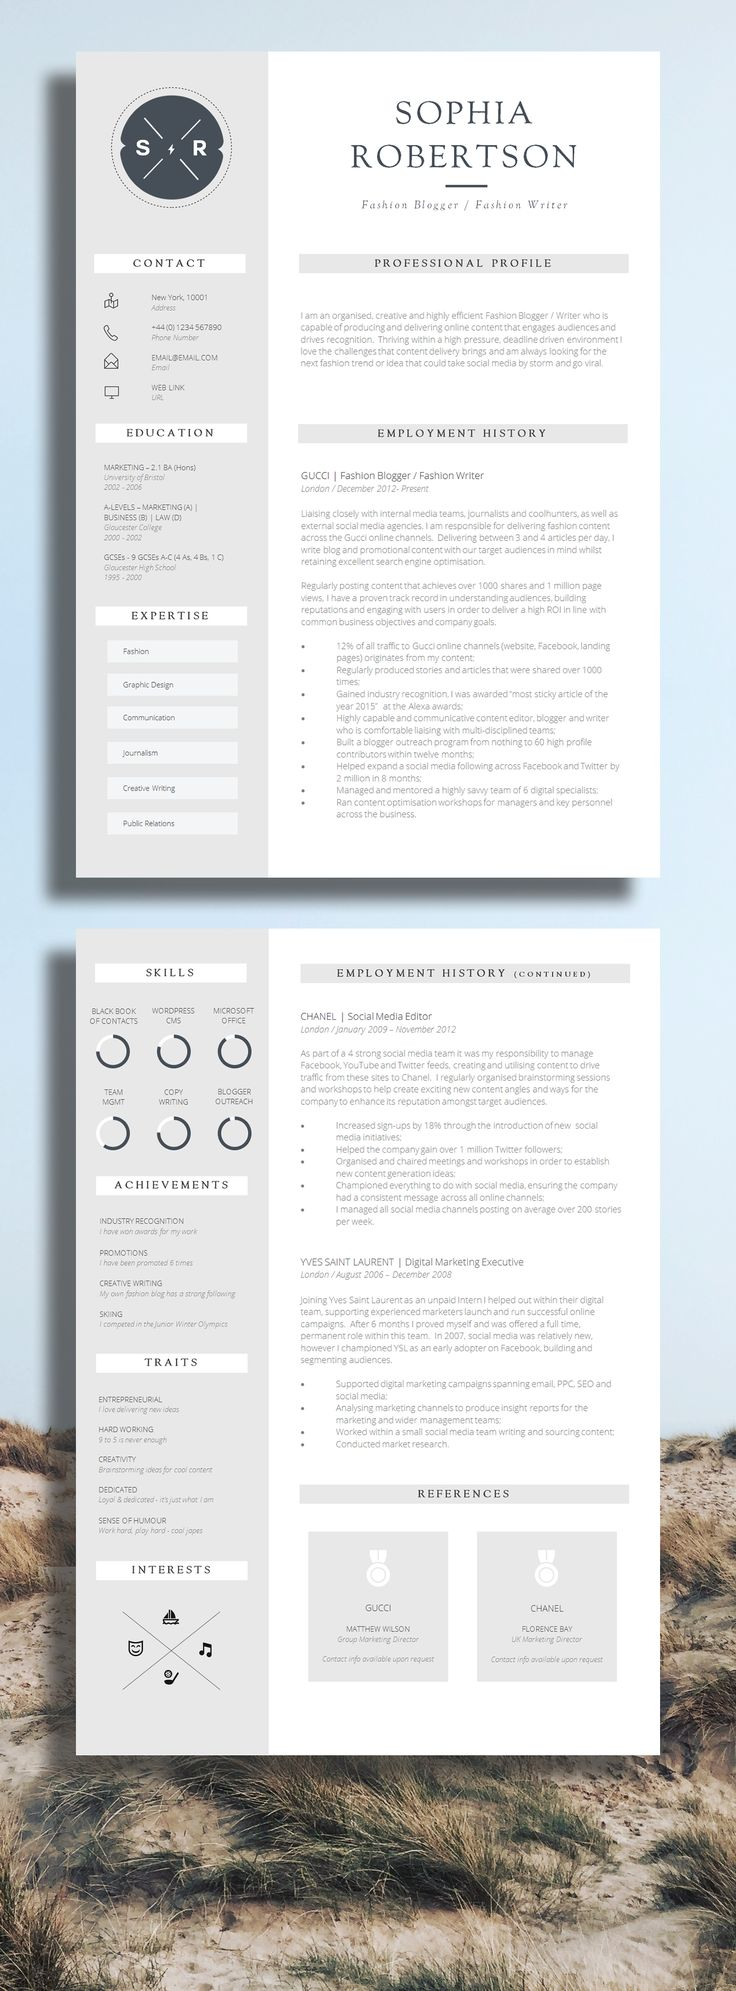 21 Best CV Design Images On Pinterest